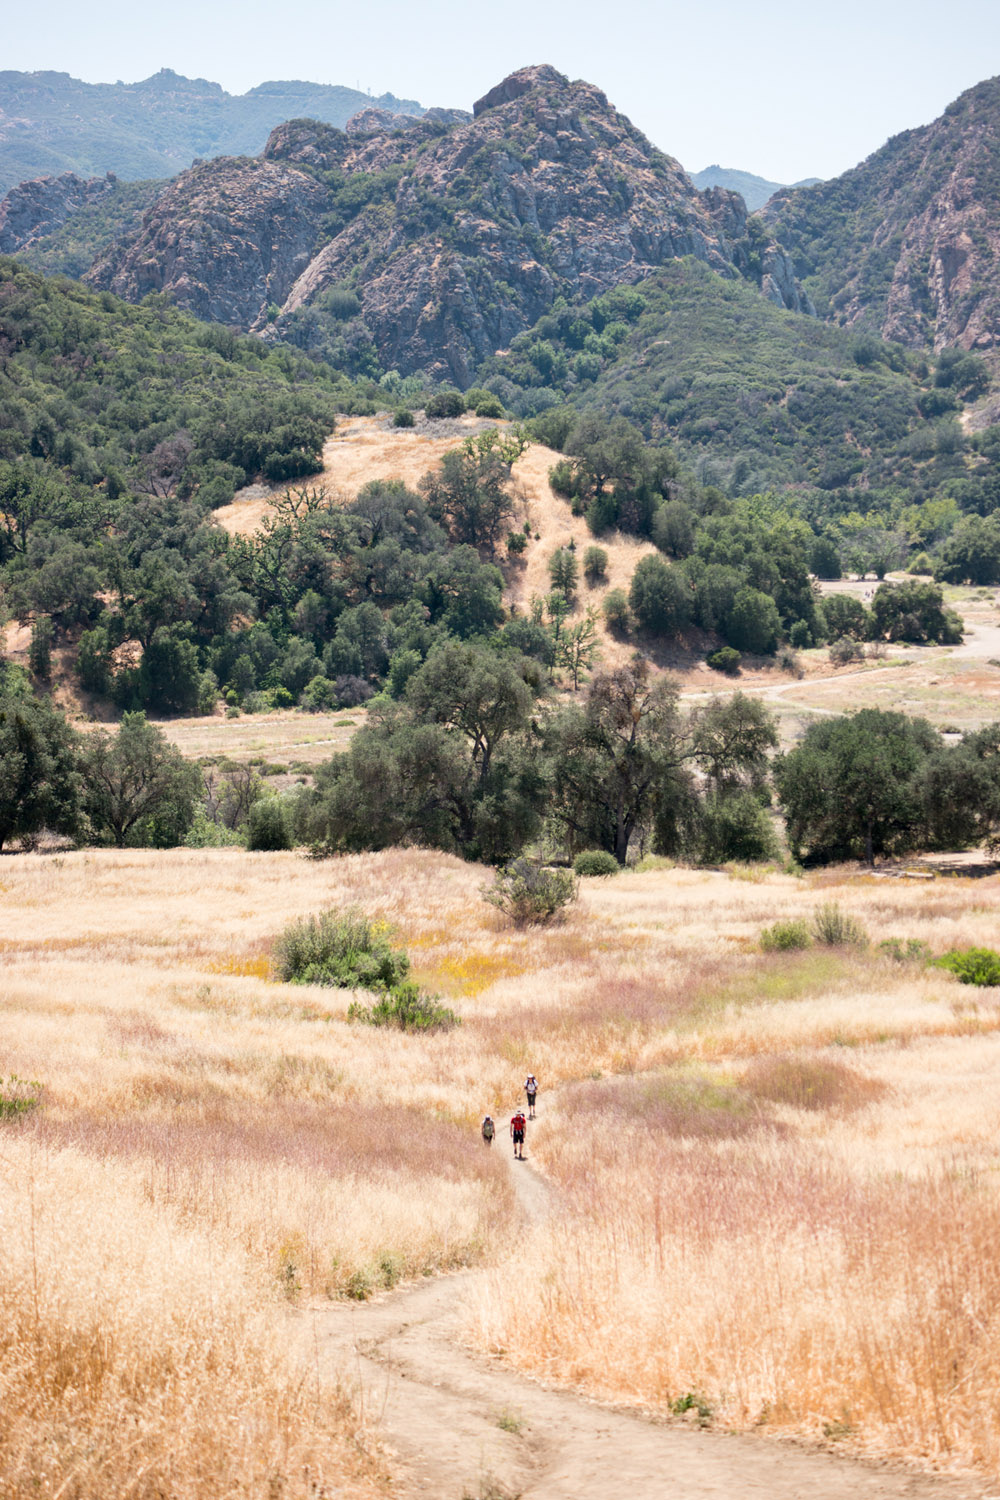 Wasim Muklashy Photography_060615_Malibu Creek State Park_California_Samsung NX1_50-150S_ SAM_4870_1800px.jpg